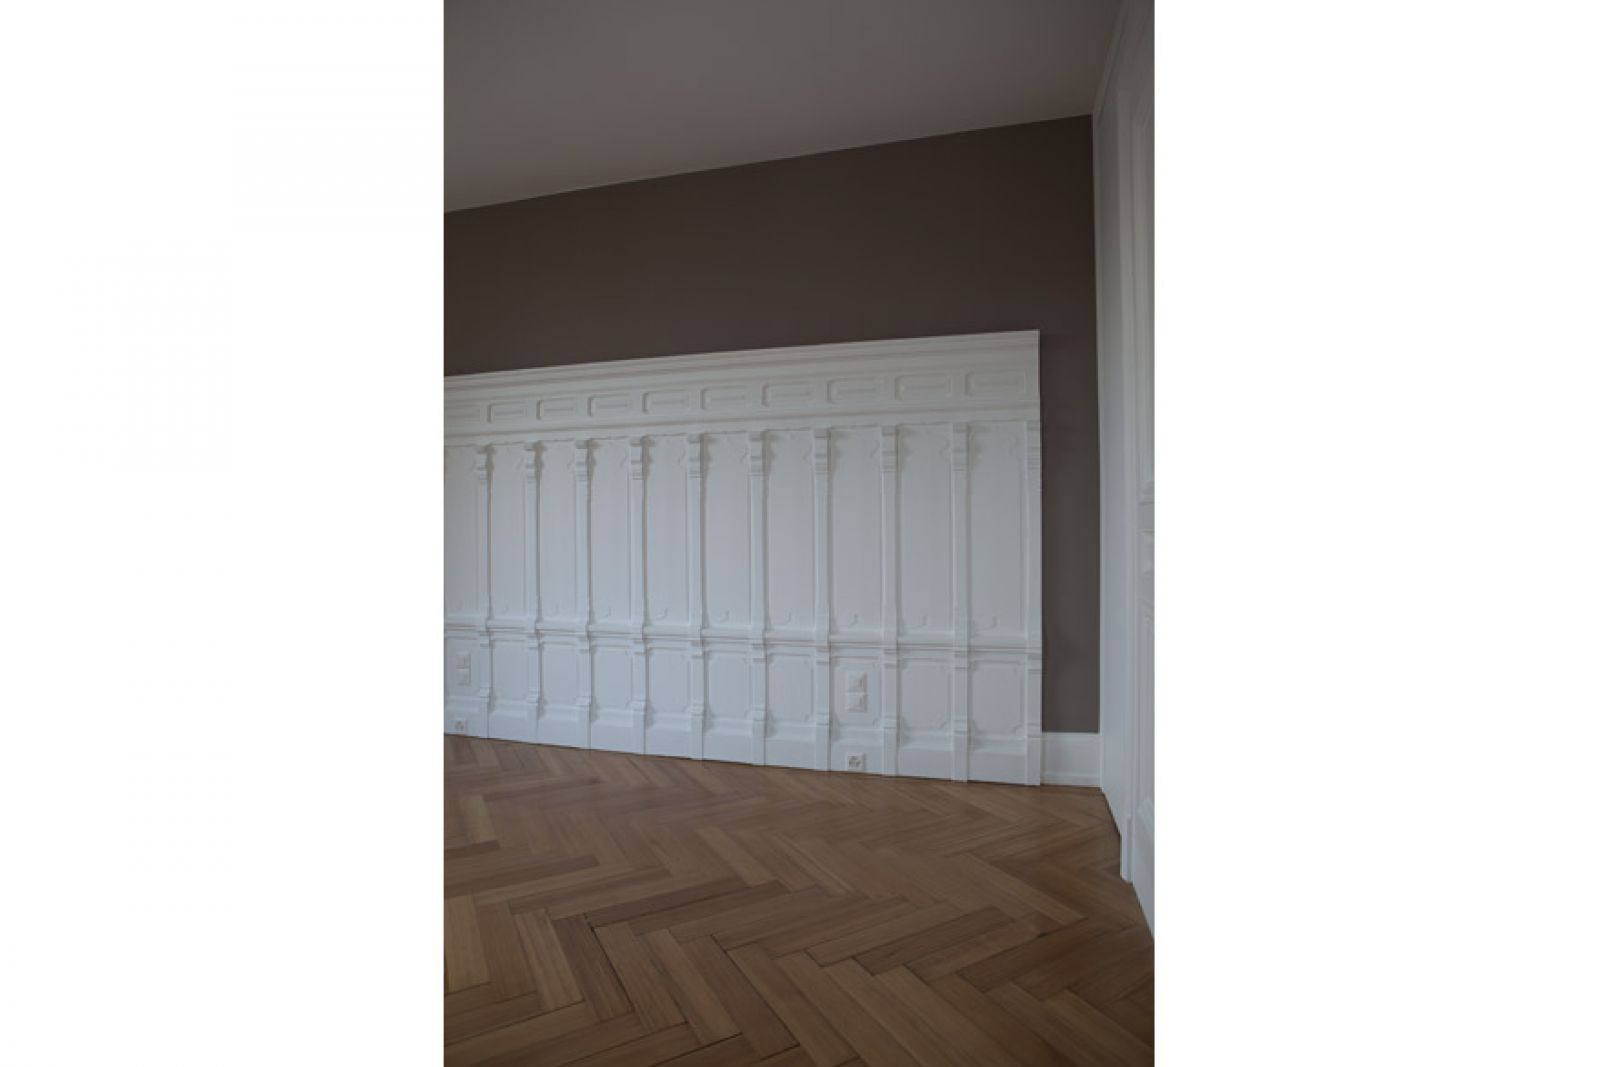 travaux de r novation d 39 appartement lyon entreprise de r novation int rieure lyon le. Black Bedroom Furniture Sets. Home Design Ideas